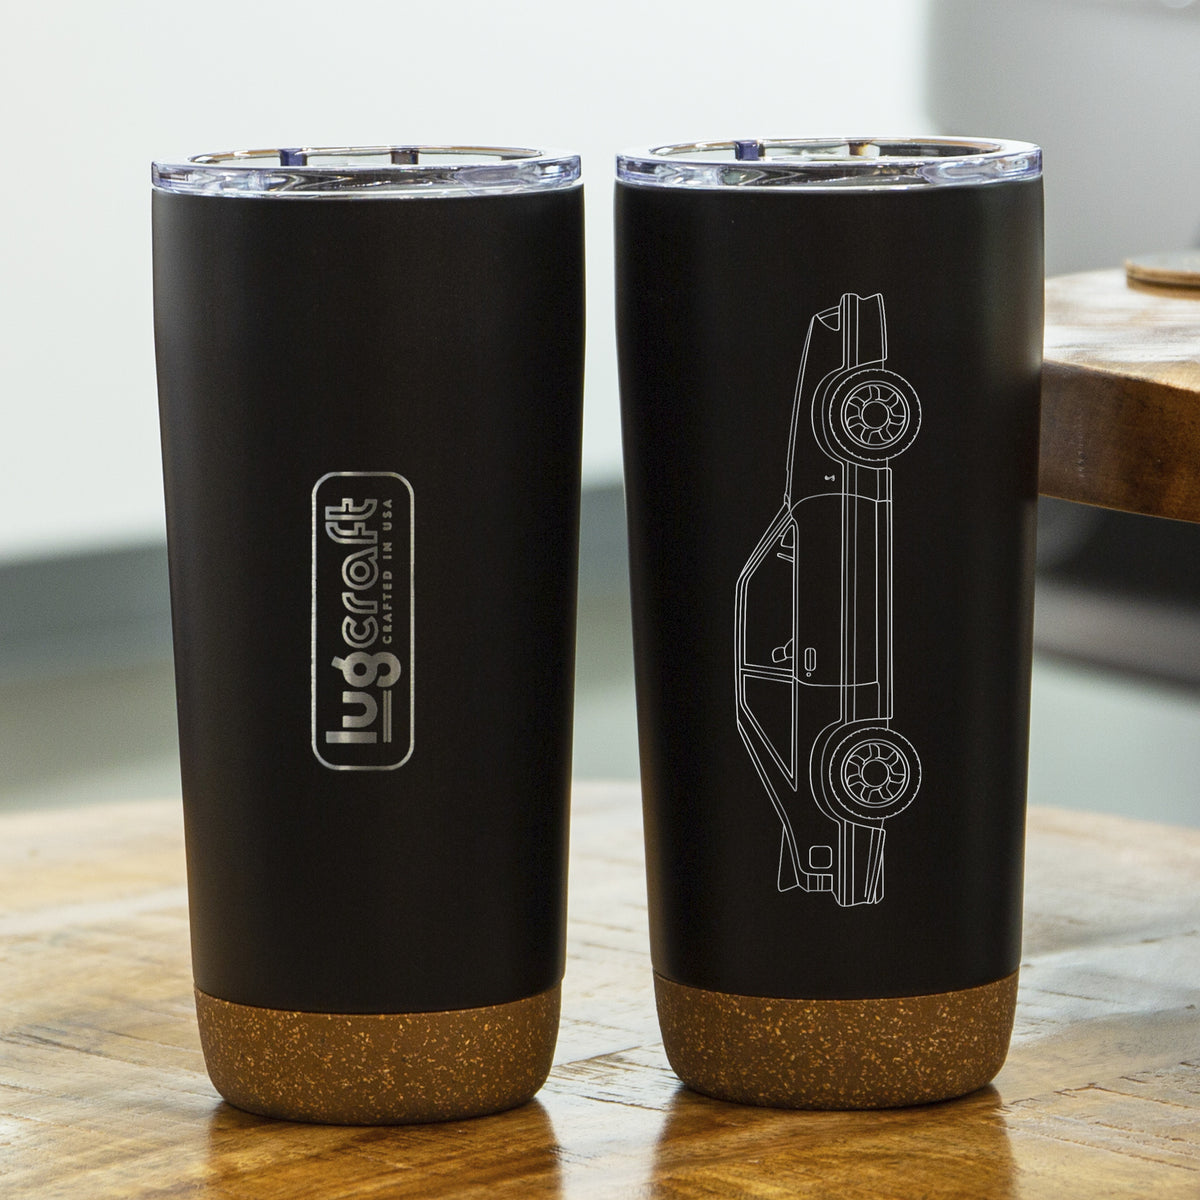 Ford Mustang GT Cobra 1993 Insulated Stainless Steel Coffee Tumbler - 20 oz